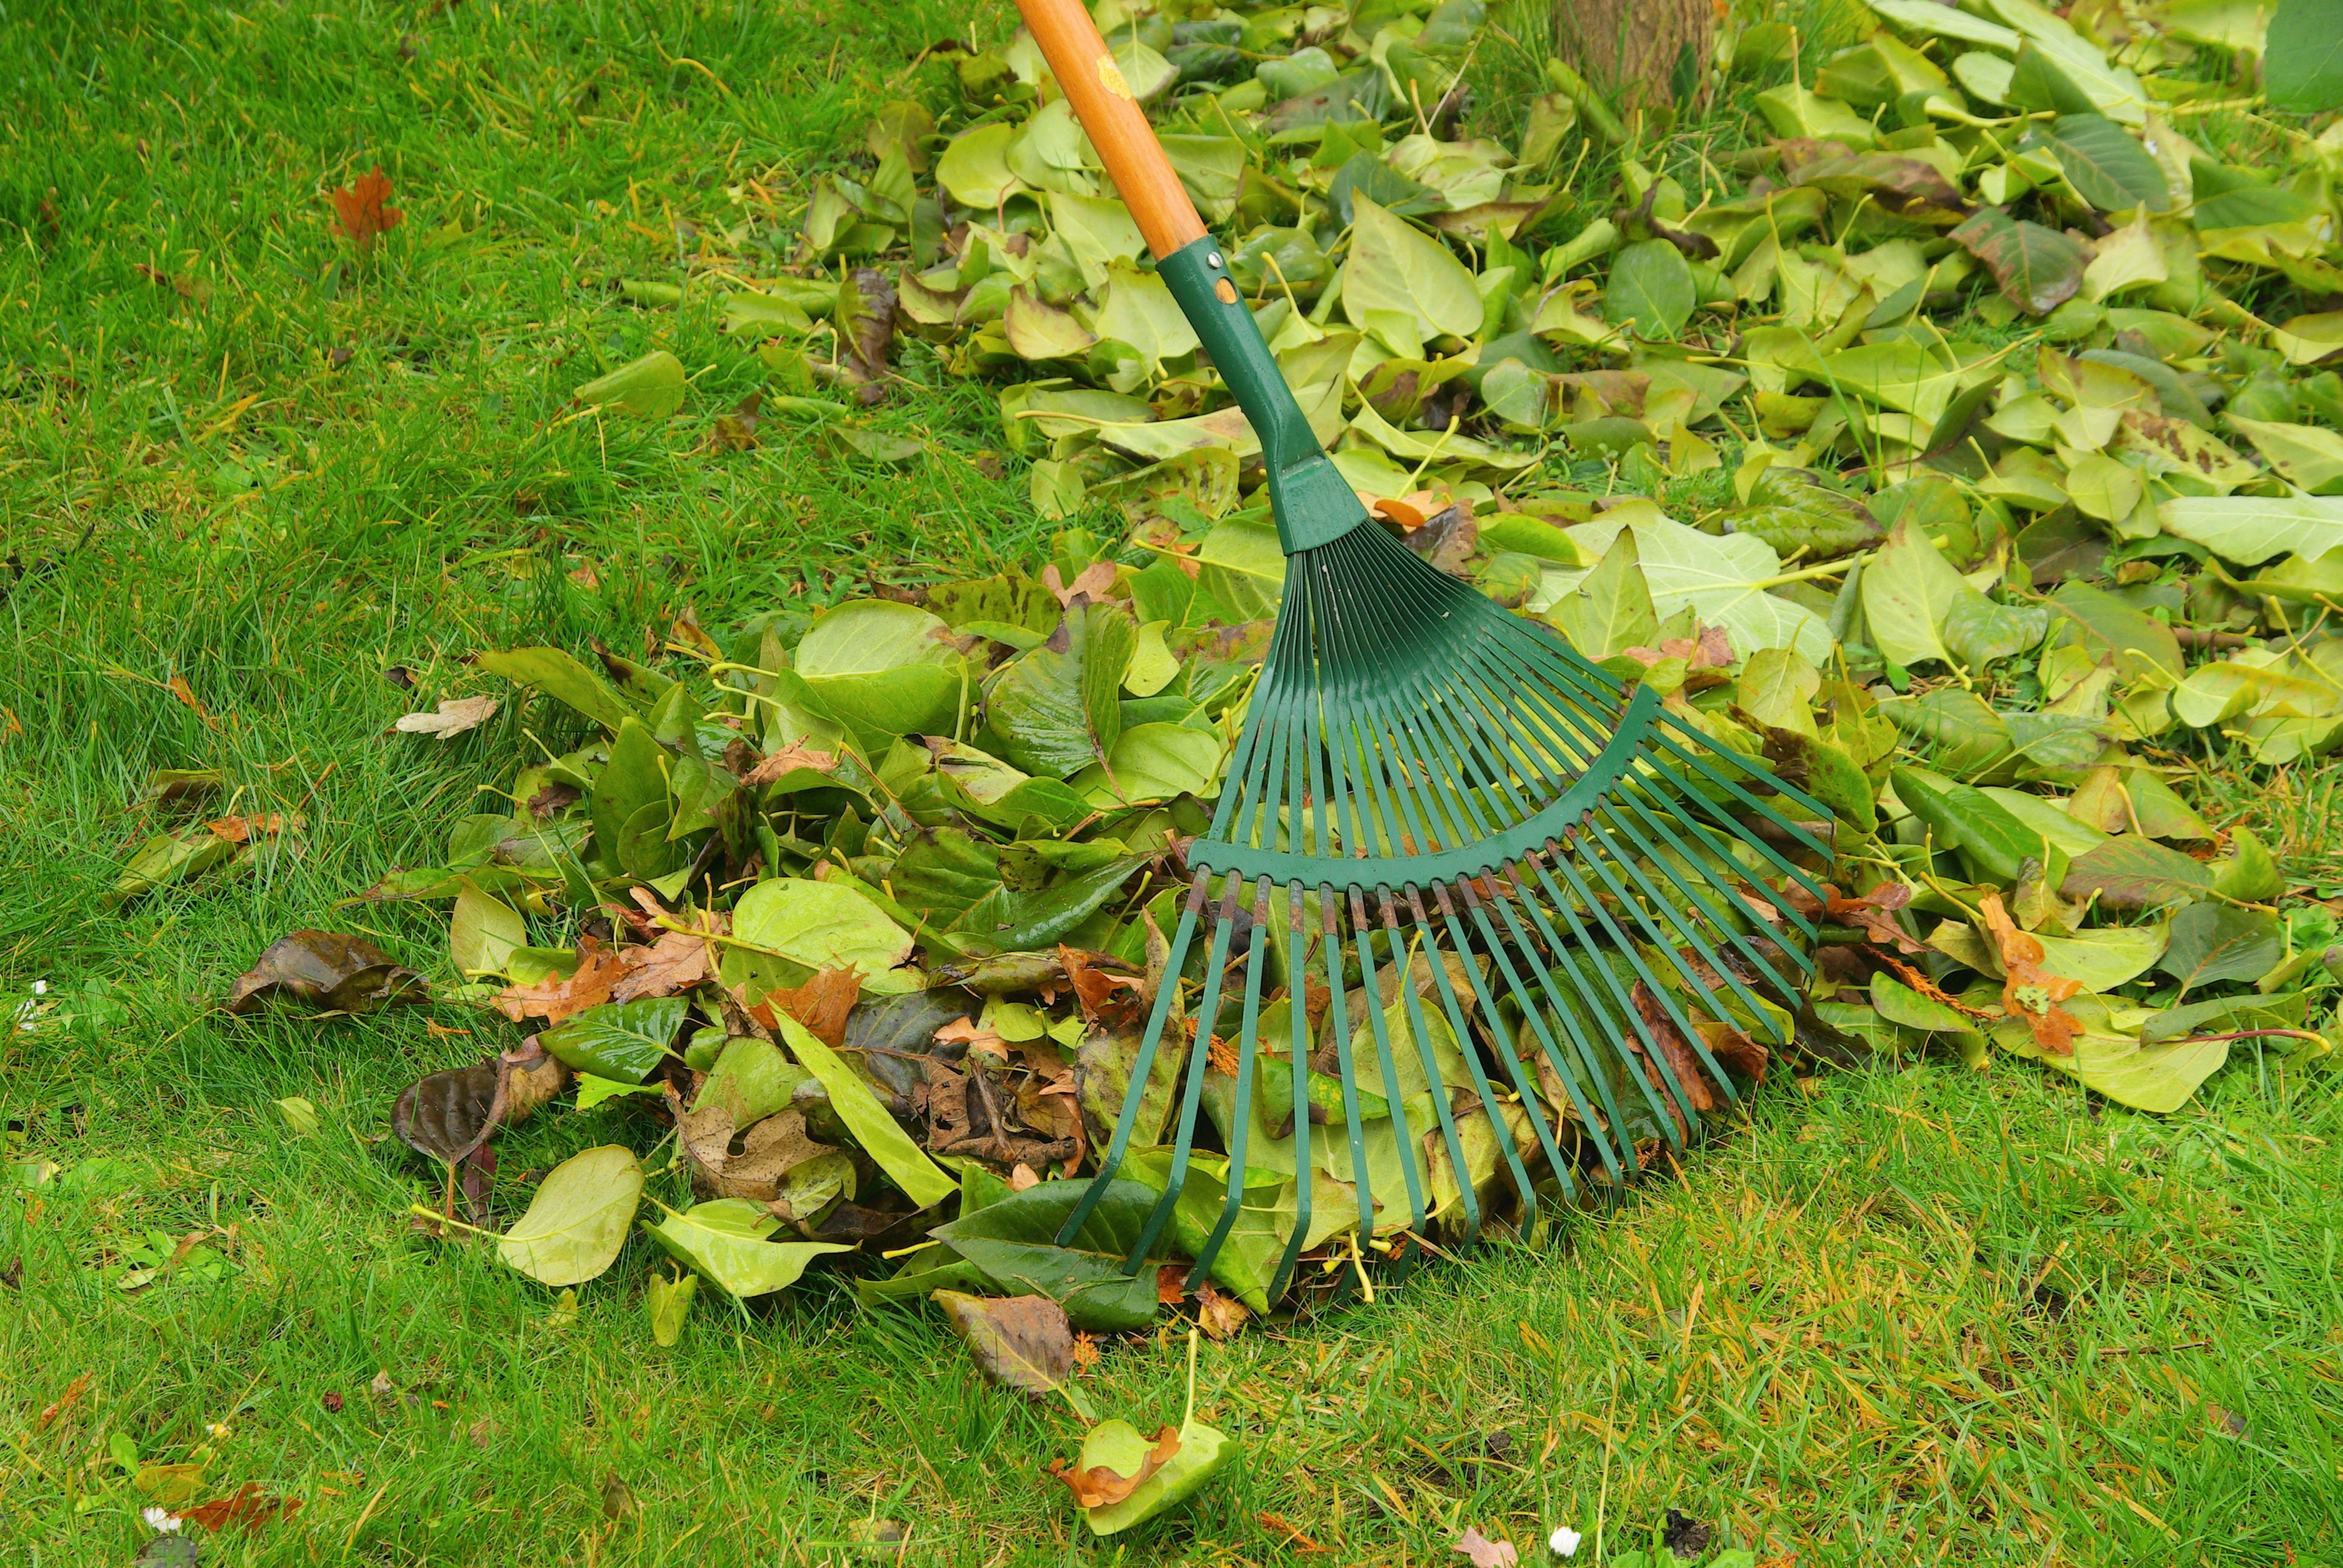 Fall lawn care tips archives - Autumn lawn care advice ...